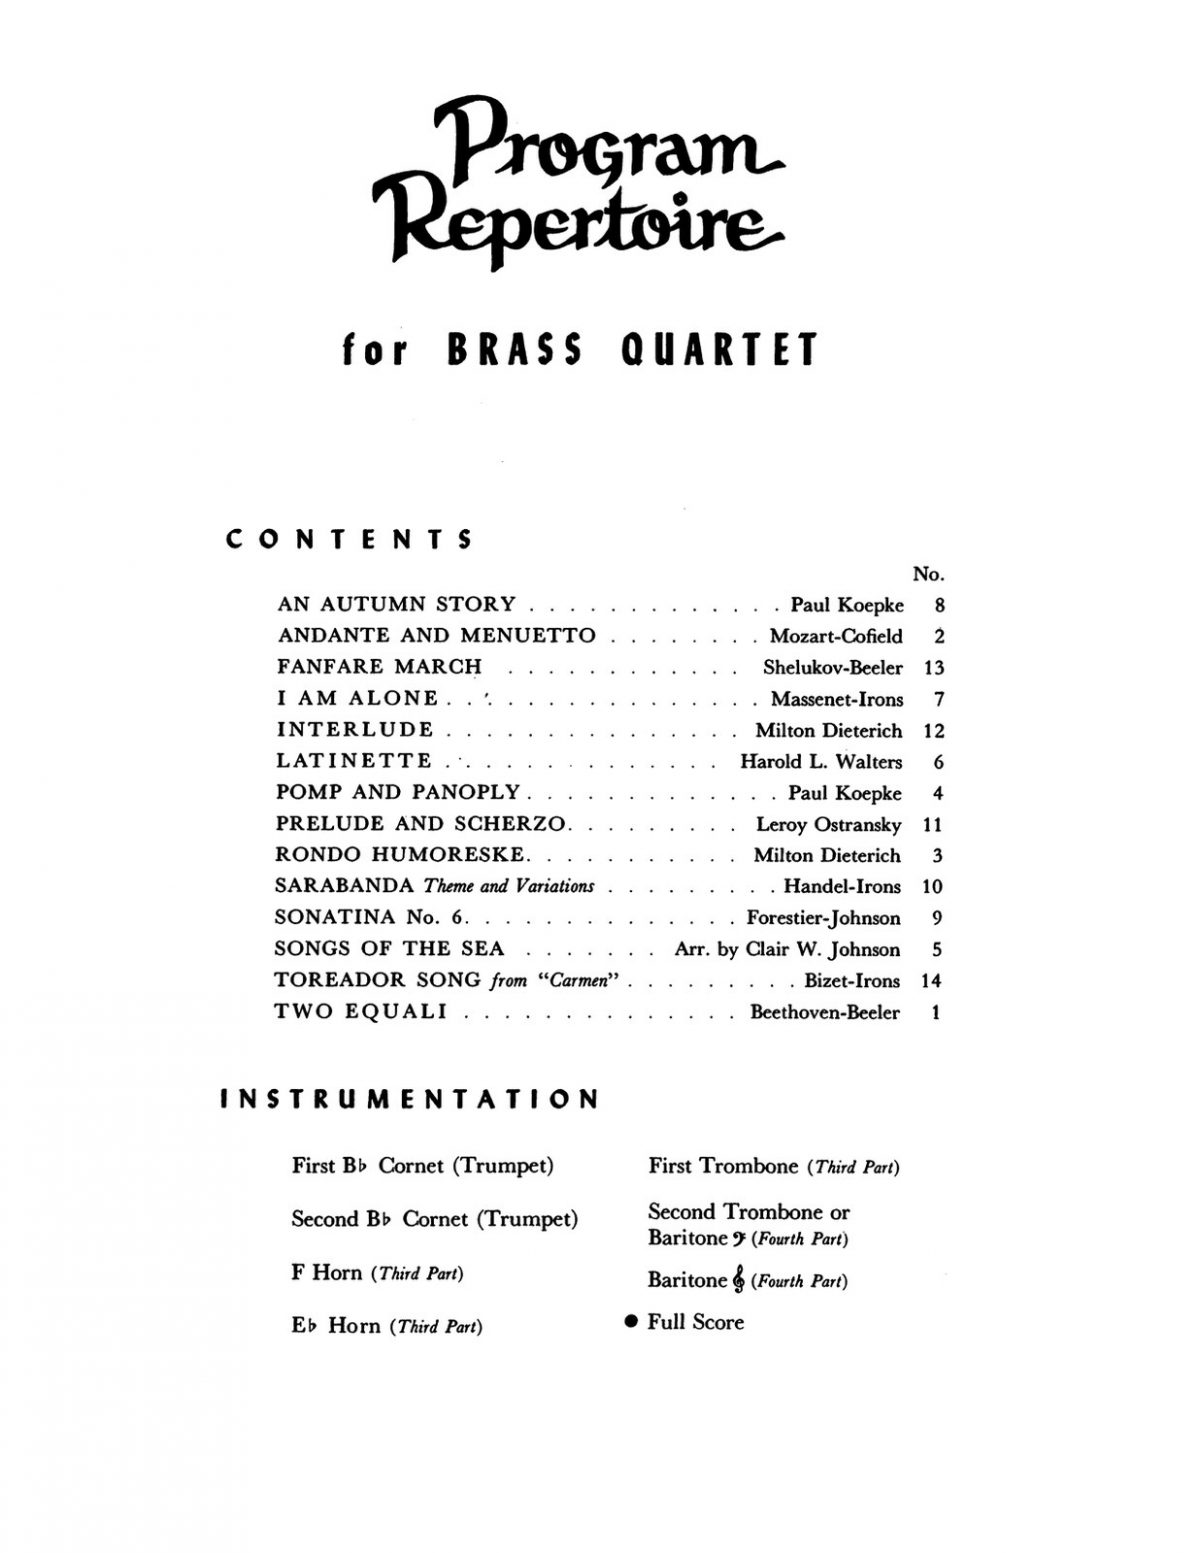 Various, Program Repertoire for Brass Quartet (Score & Parts)-p003